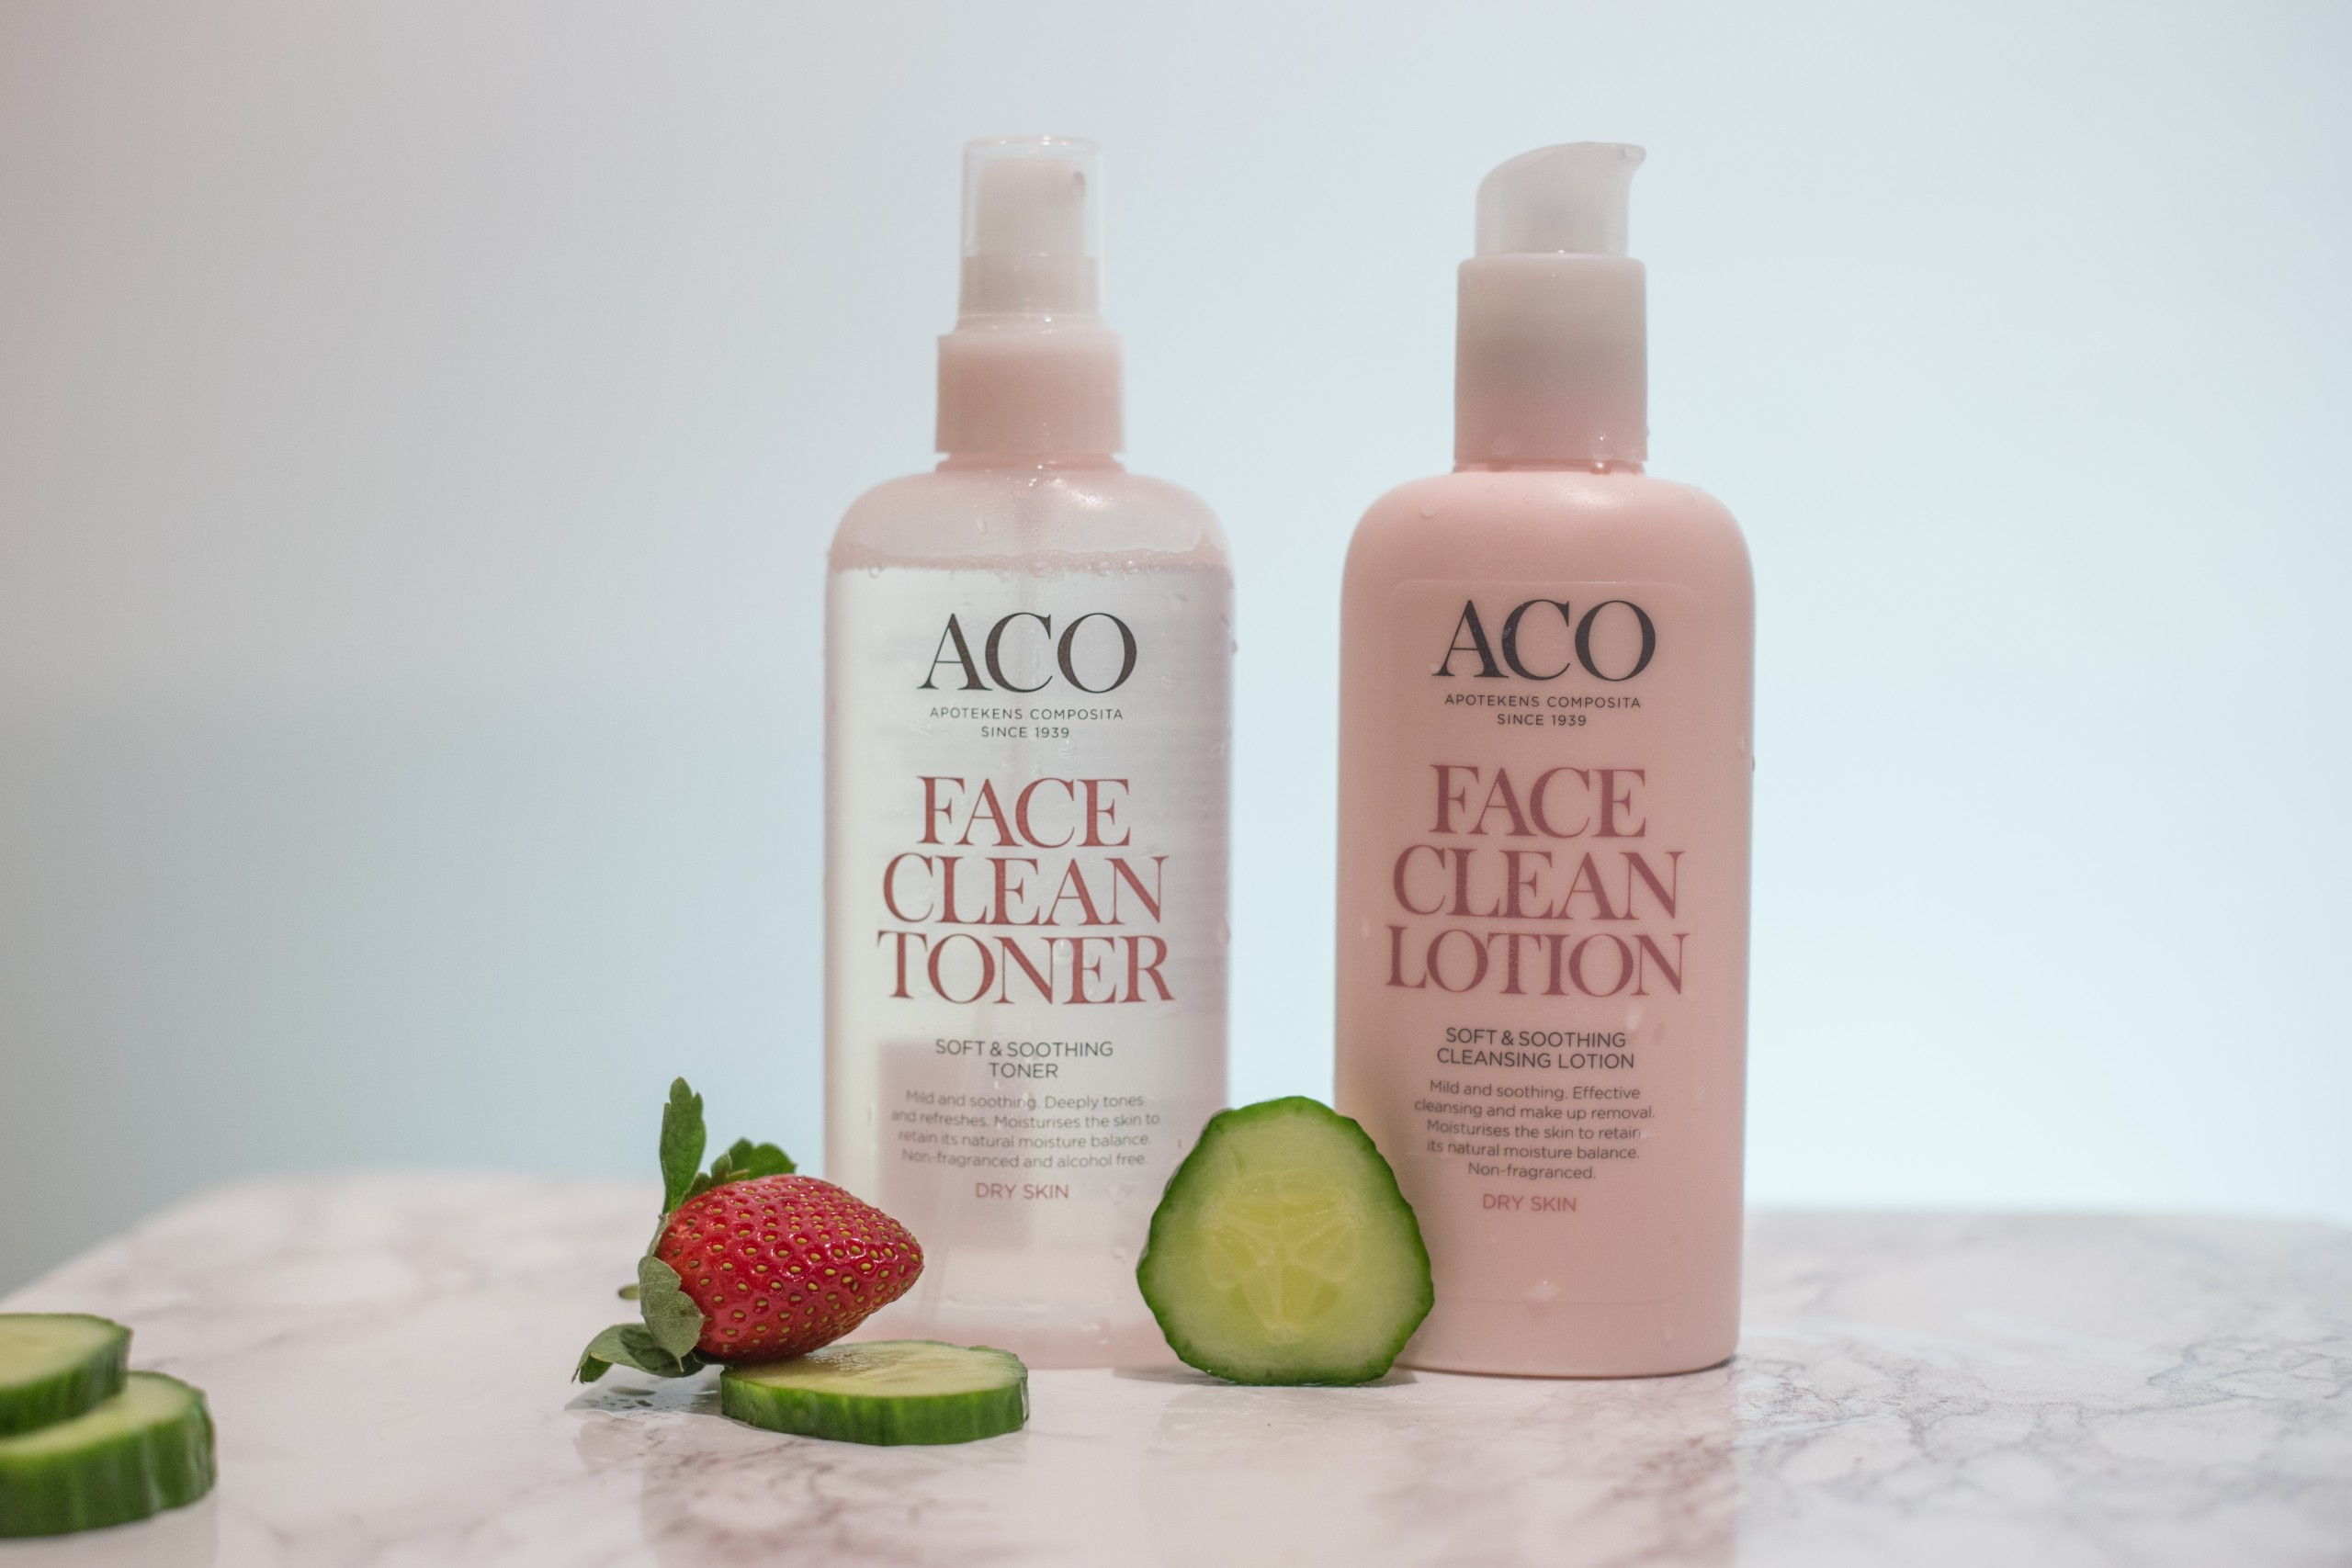 aco face clean lotion